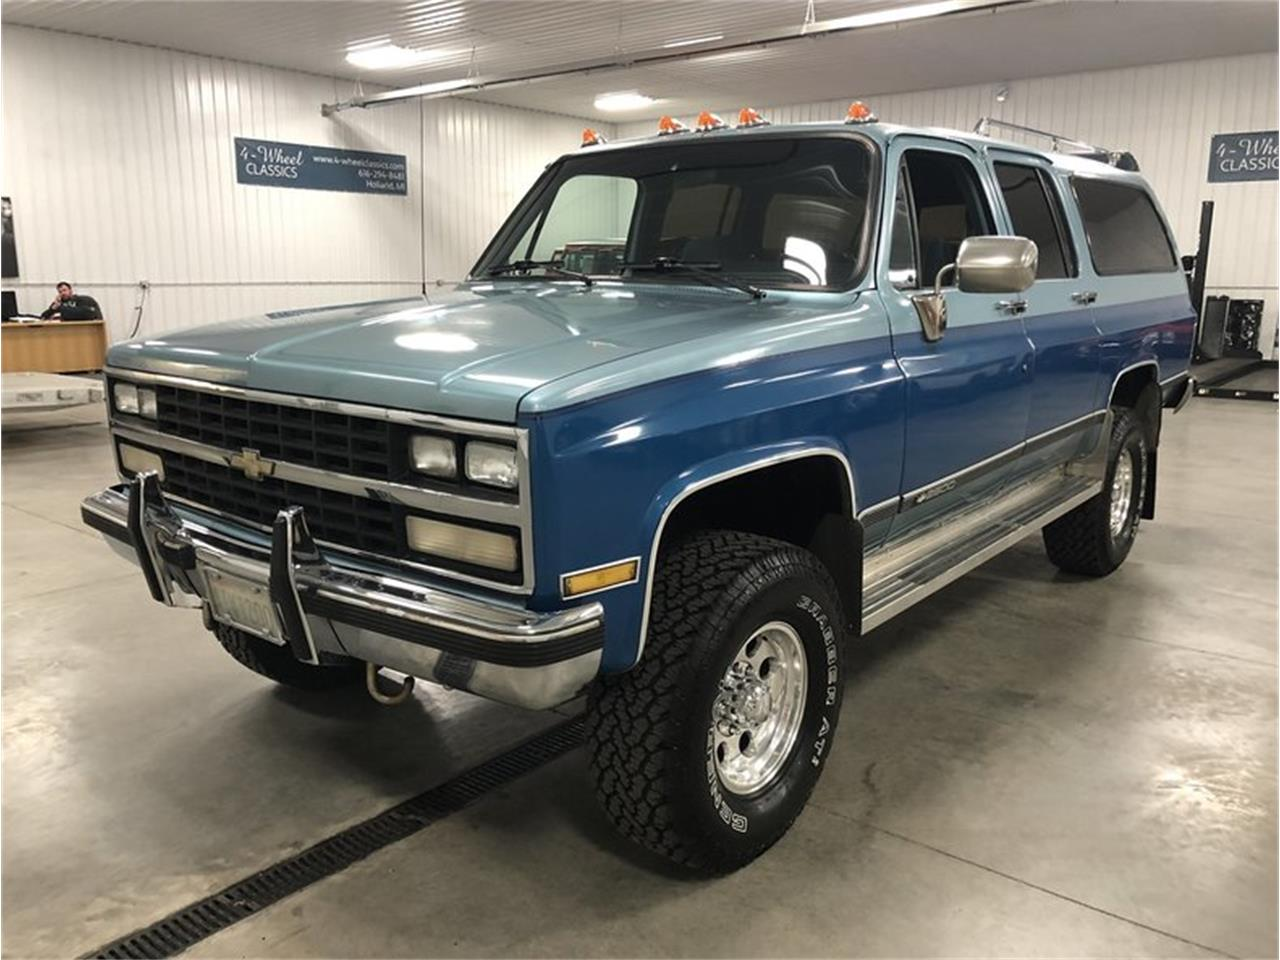 1989 chevrolet suburban for sale classiccars com cc 1086374 1995 Chevy Suburban large picture of \u002789 suburban na92